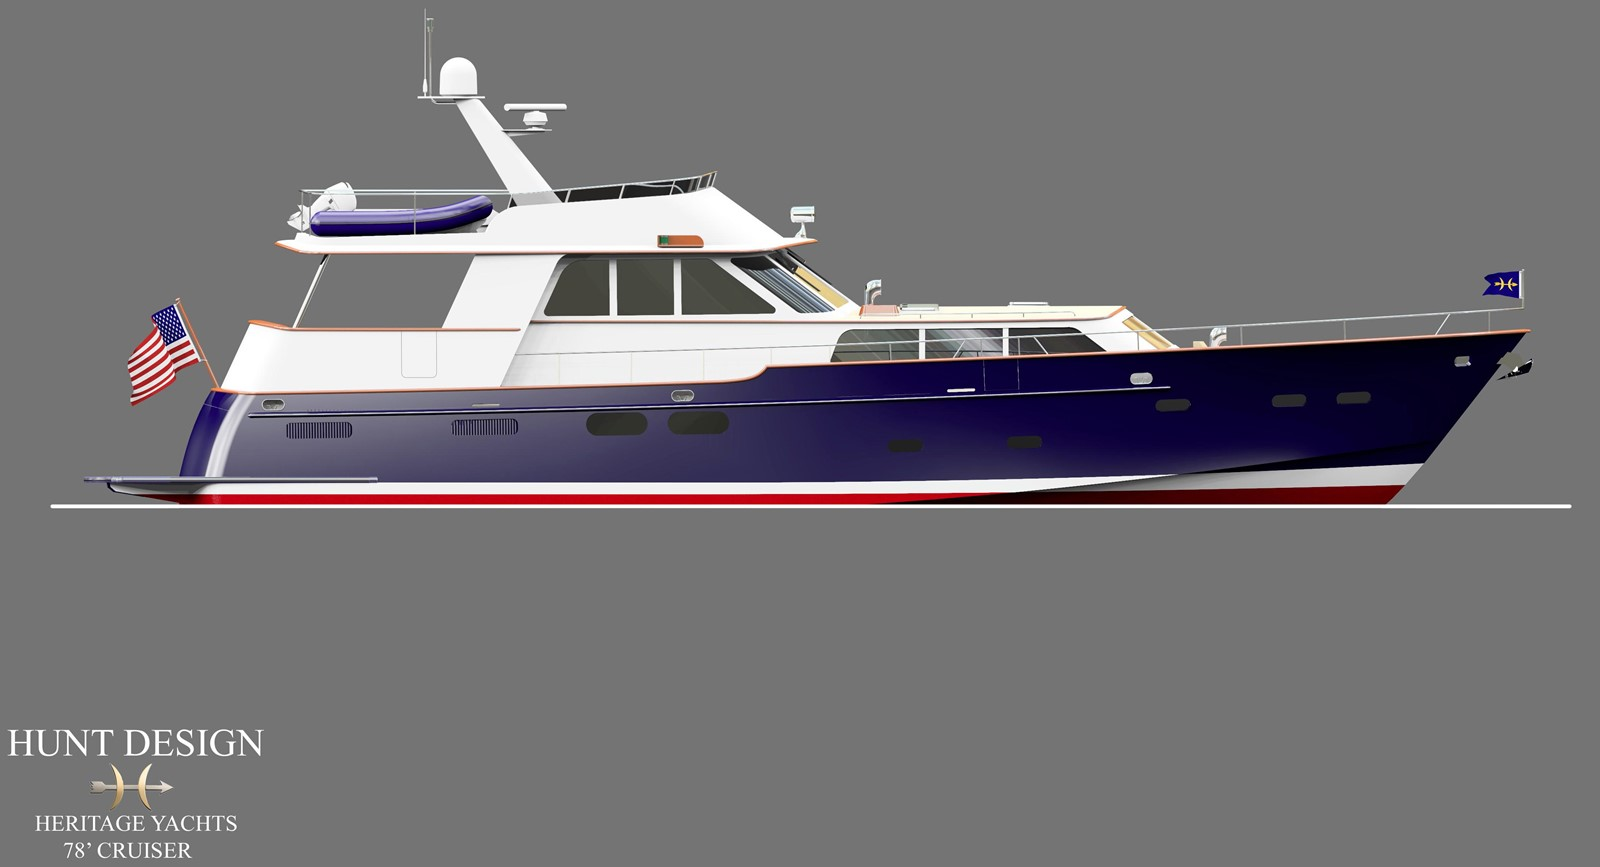 2018 Newport 78 Cruiser - Heritage Yachts For Sale